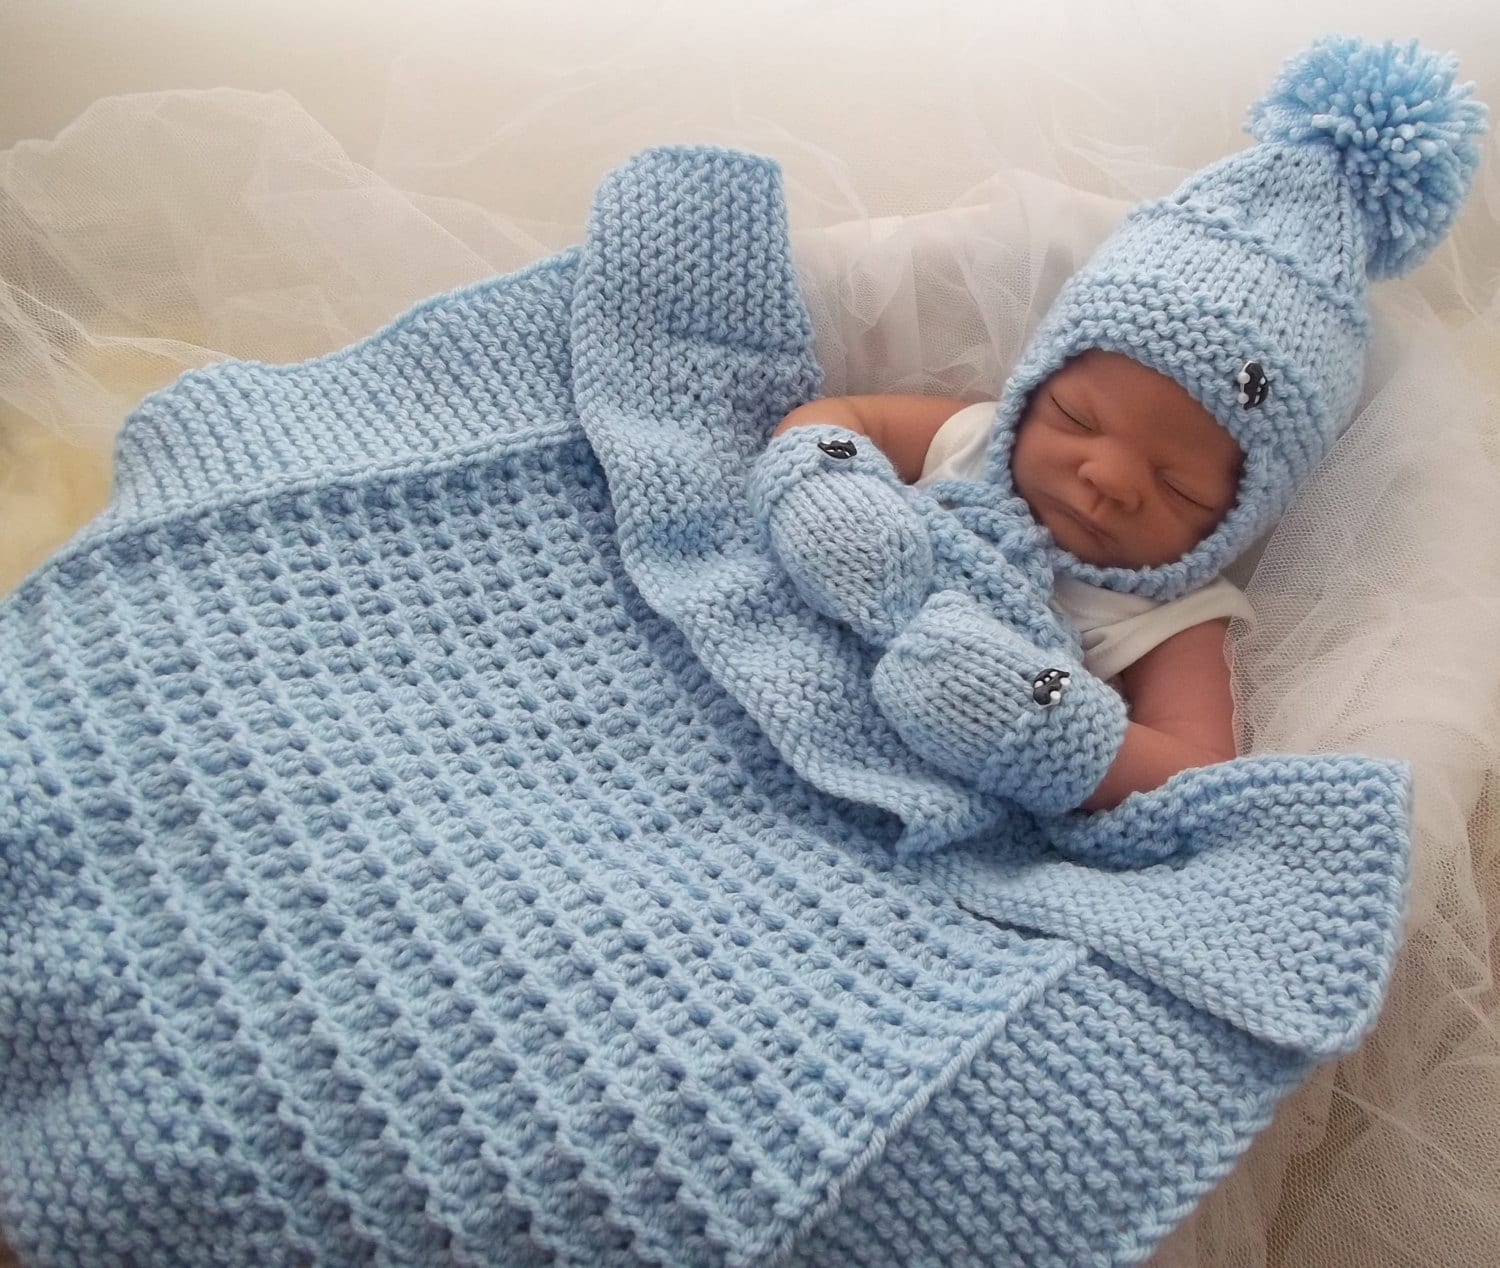 Knitting Blankets For Babies : Baby knitting pattern chunky pram blanket hat mittens